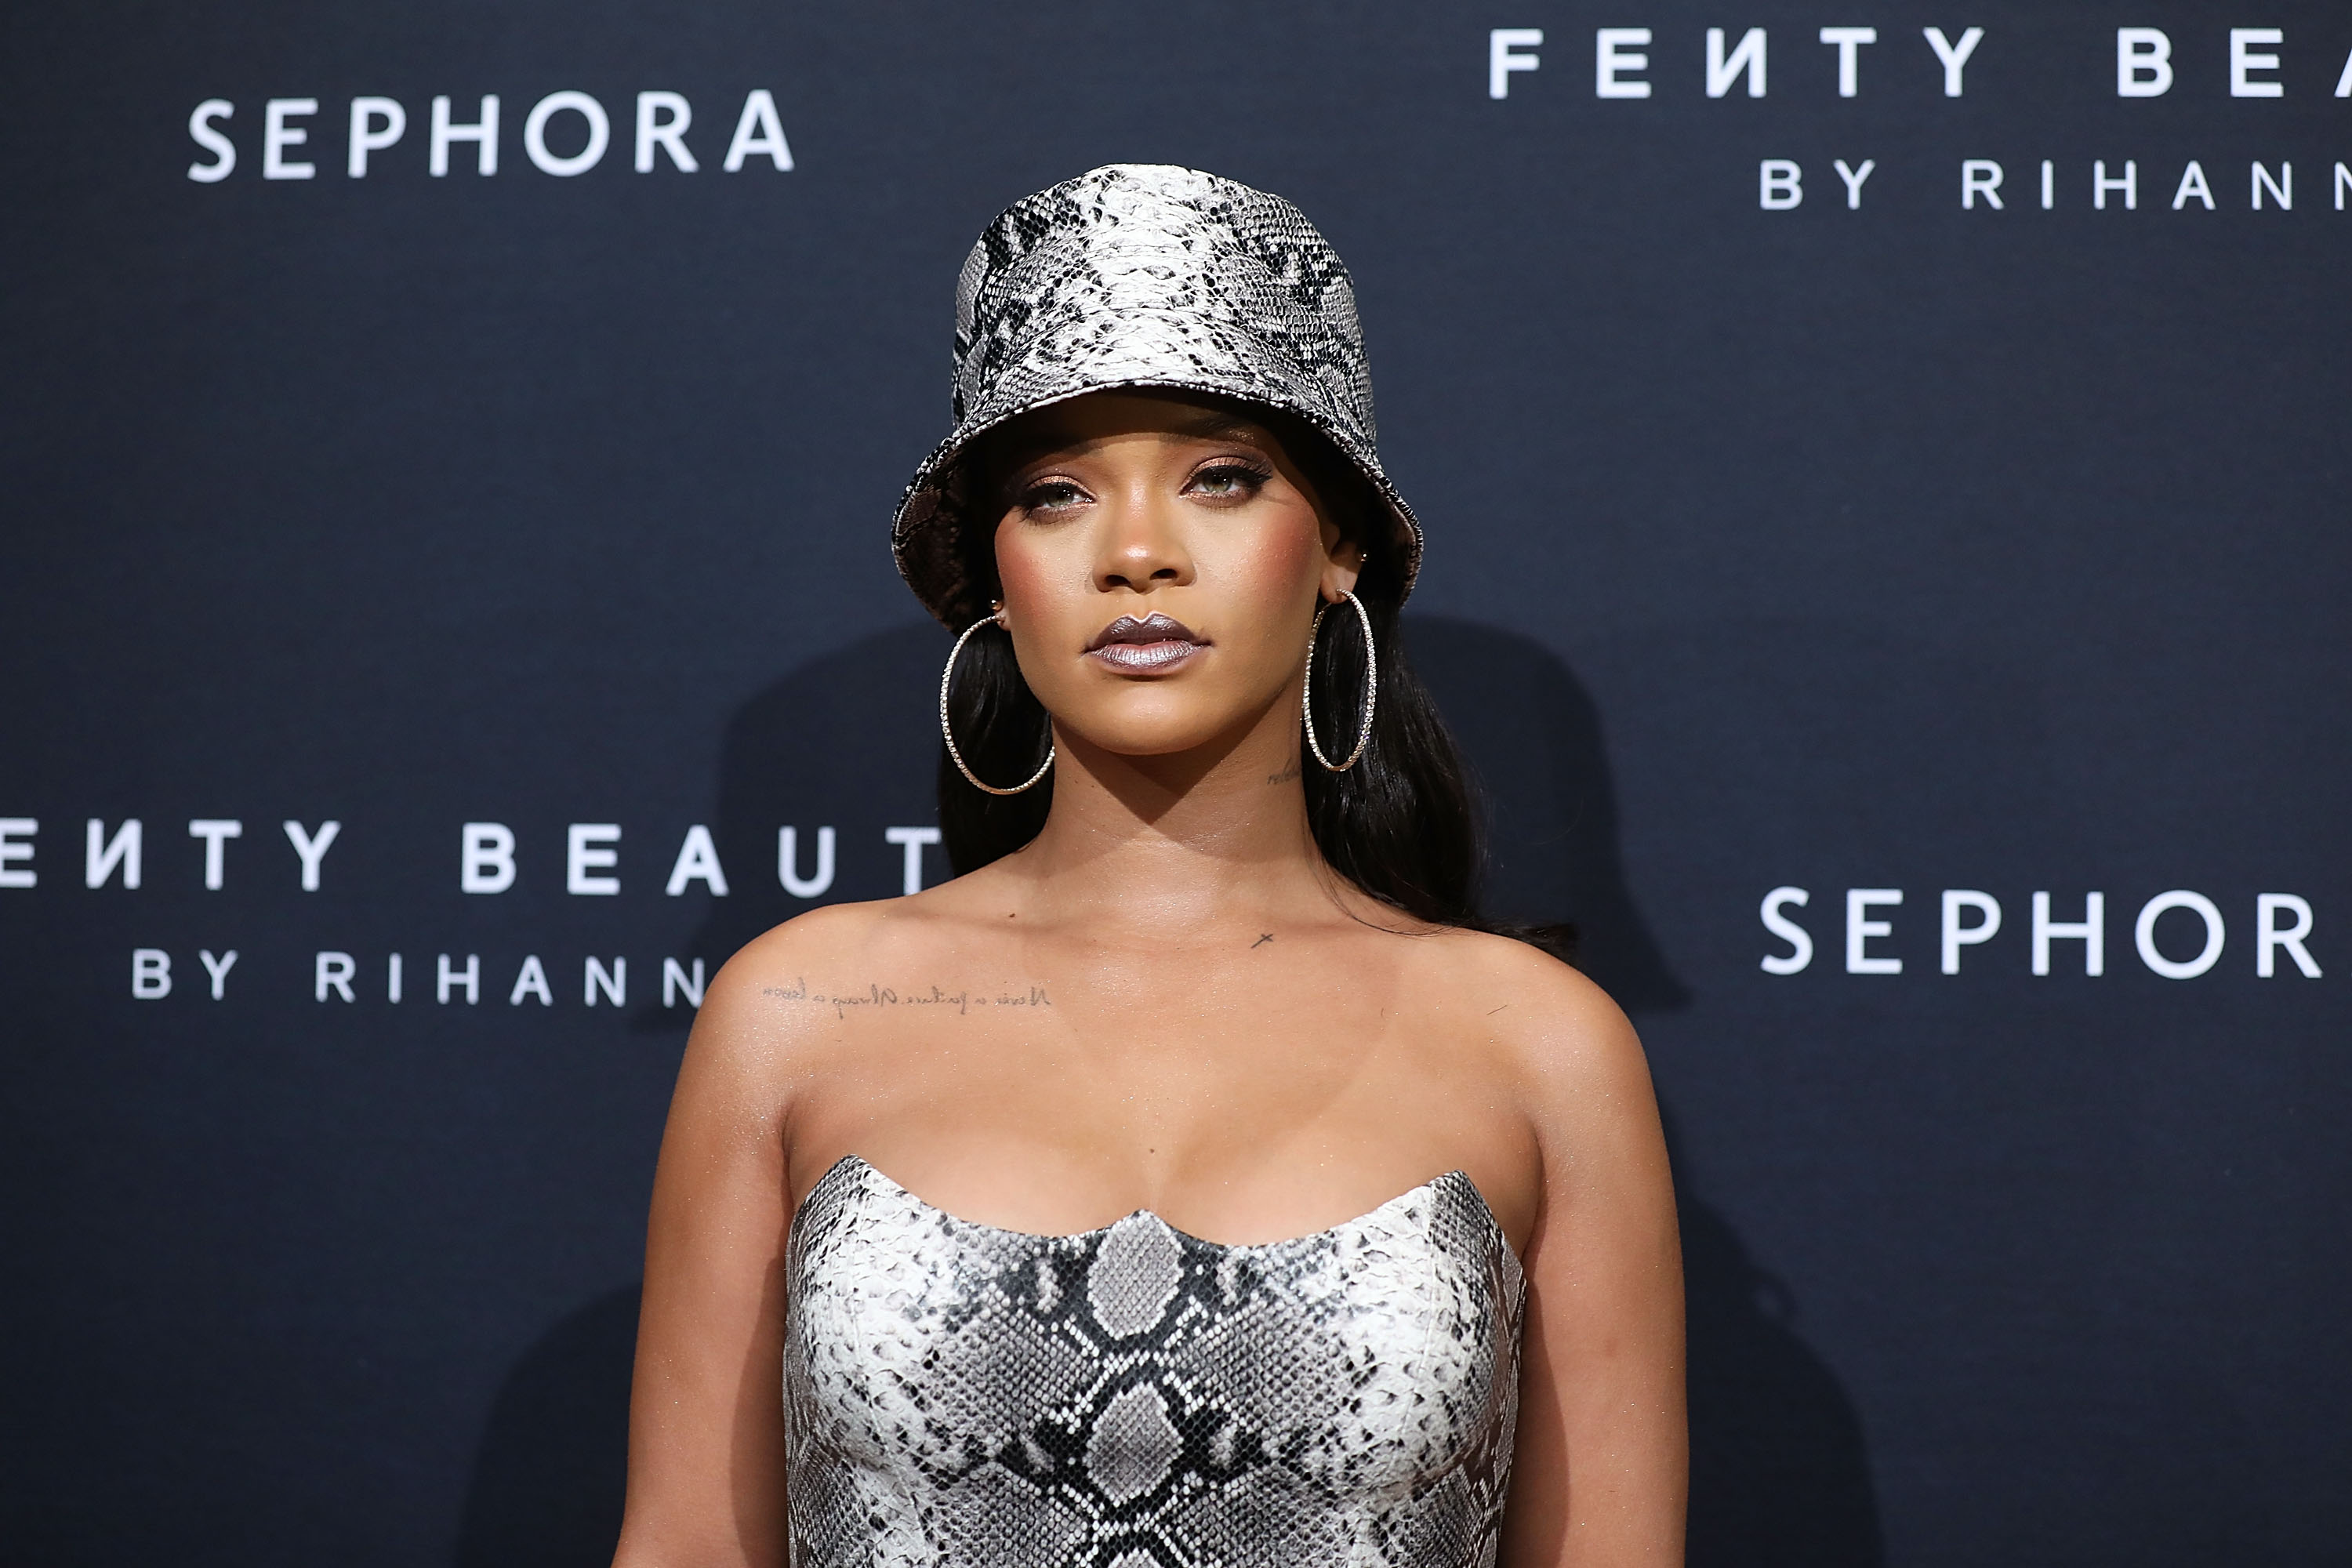 Rihanna Admits She Turned Down The 2019 Superbowl Halftime Performance